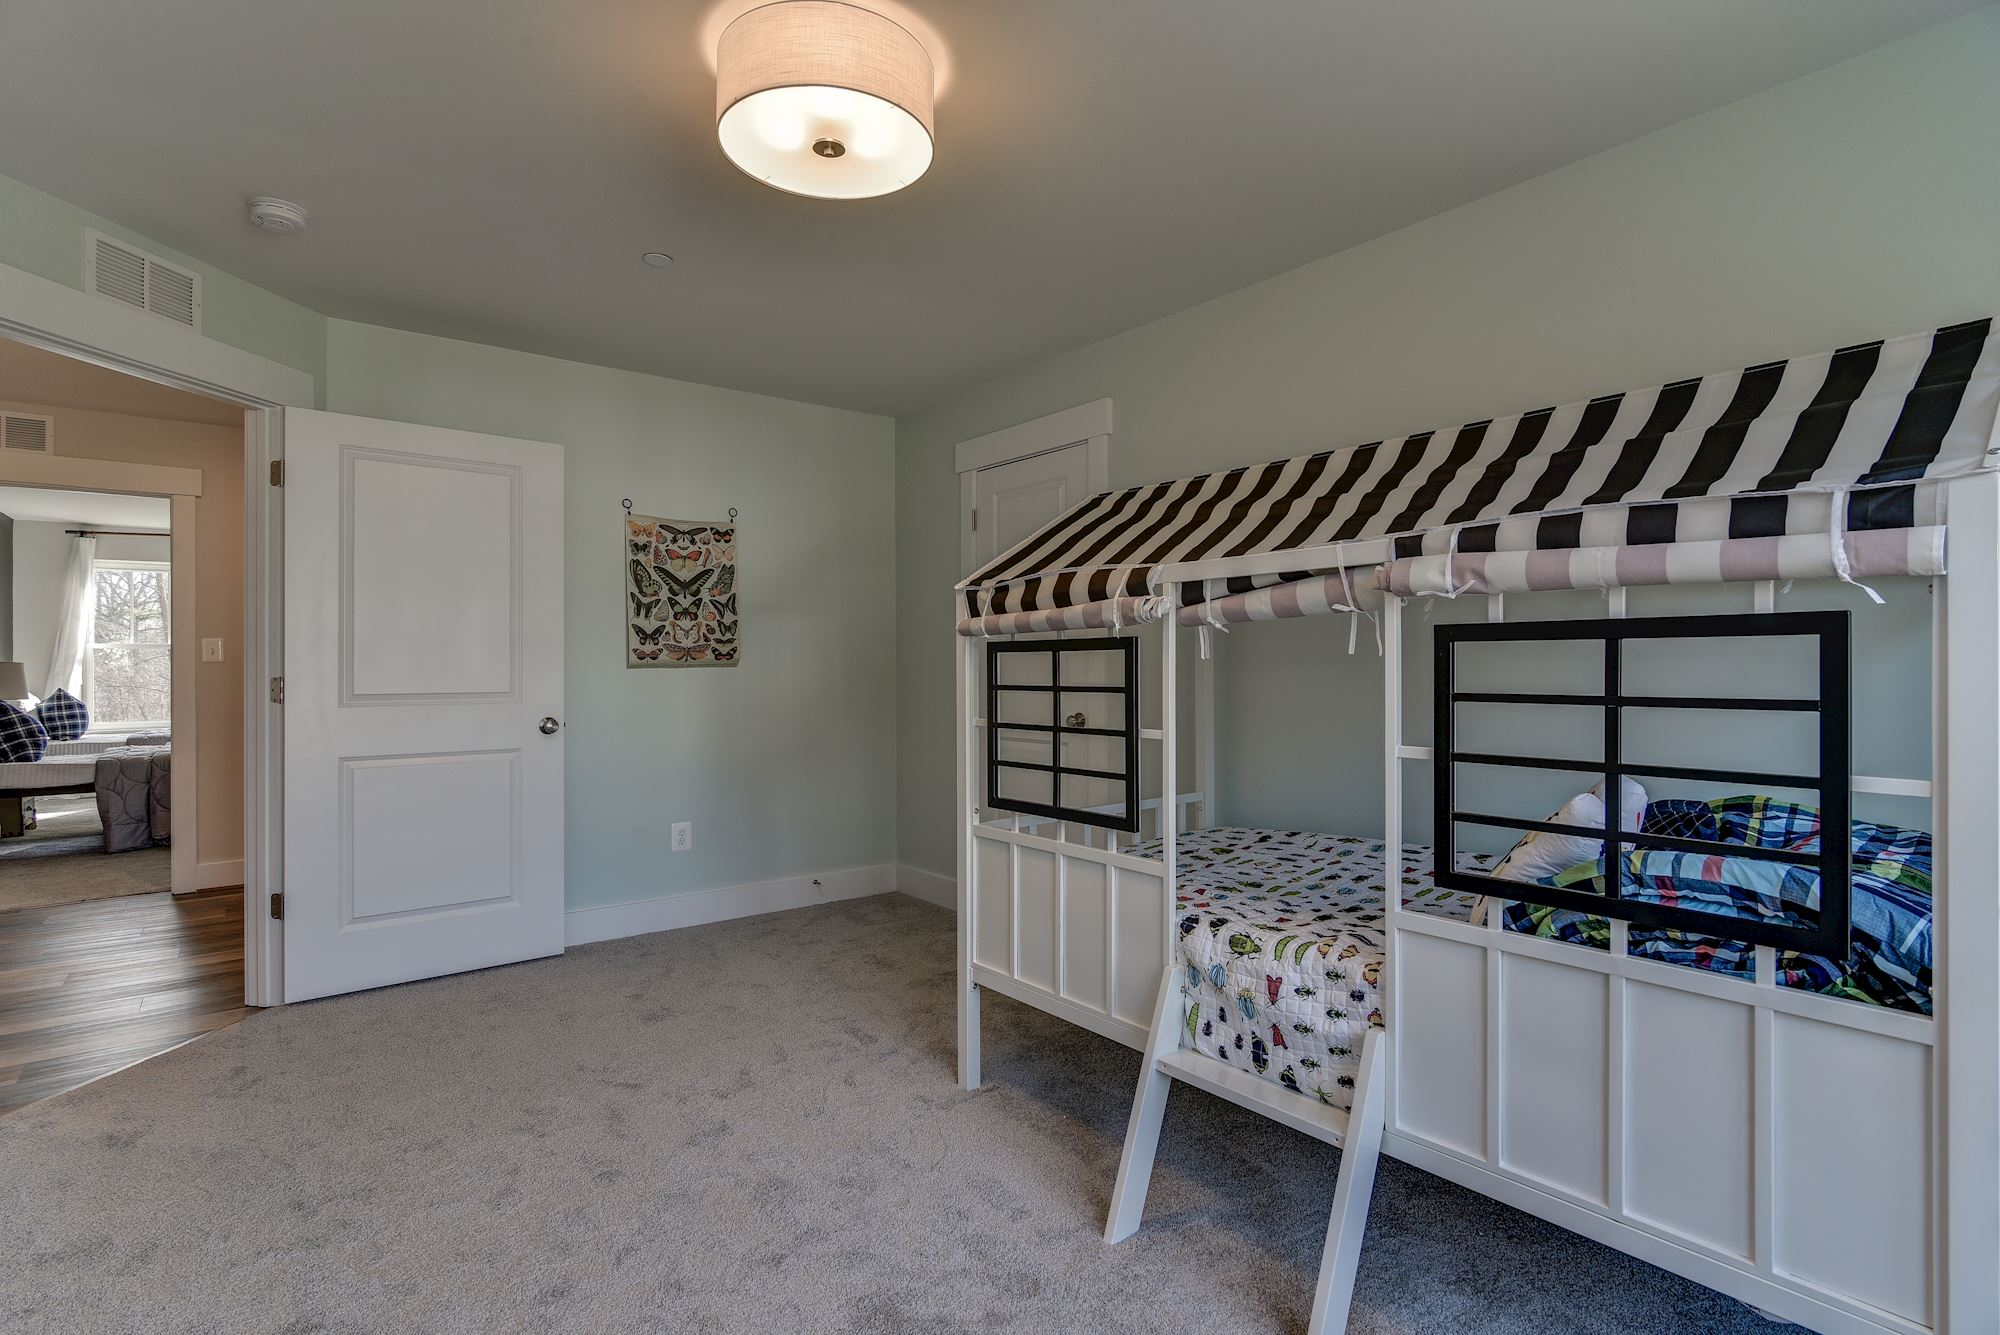 Bedrooms Photos. New Homes in Central Maryland